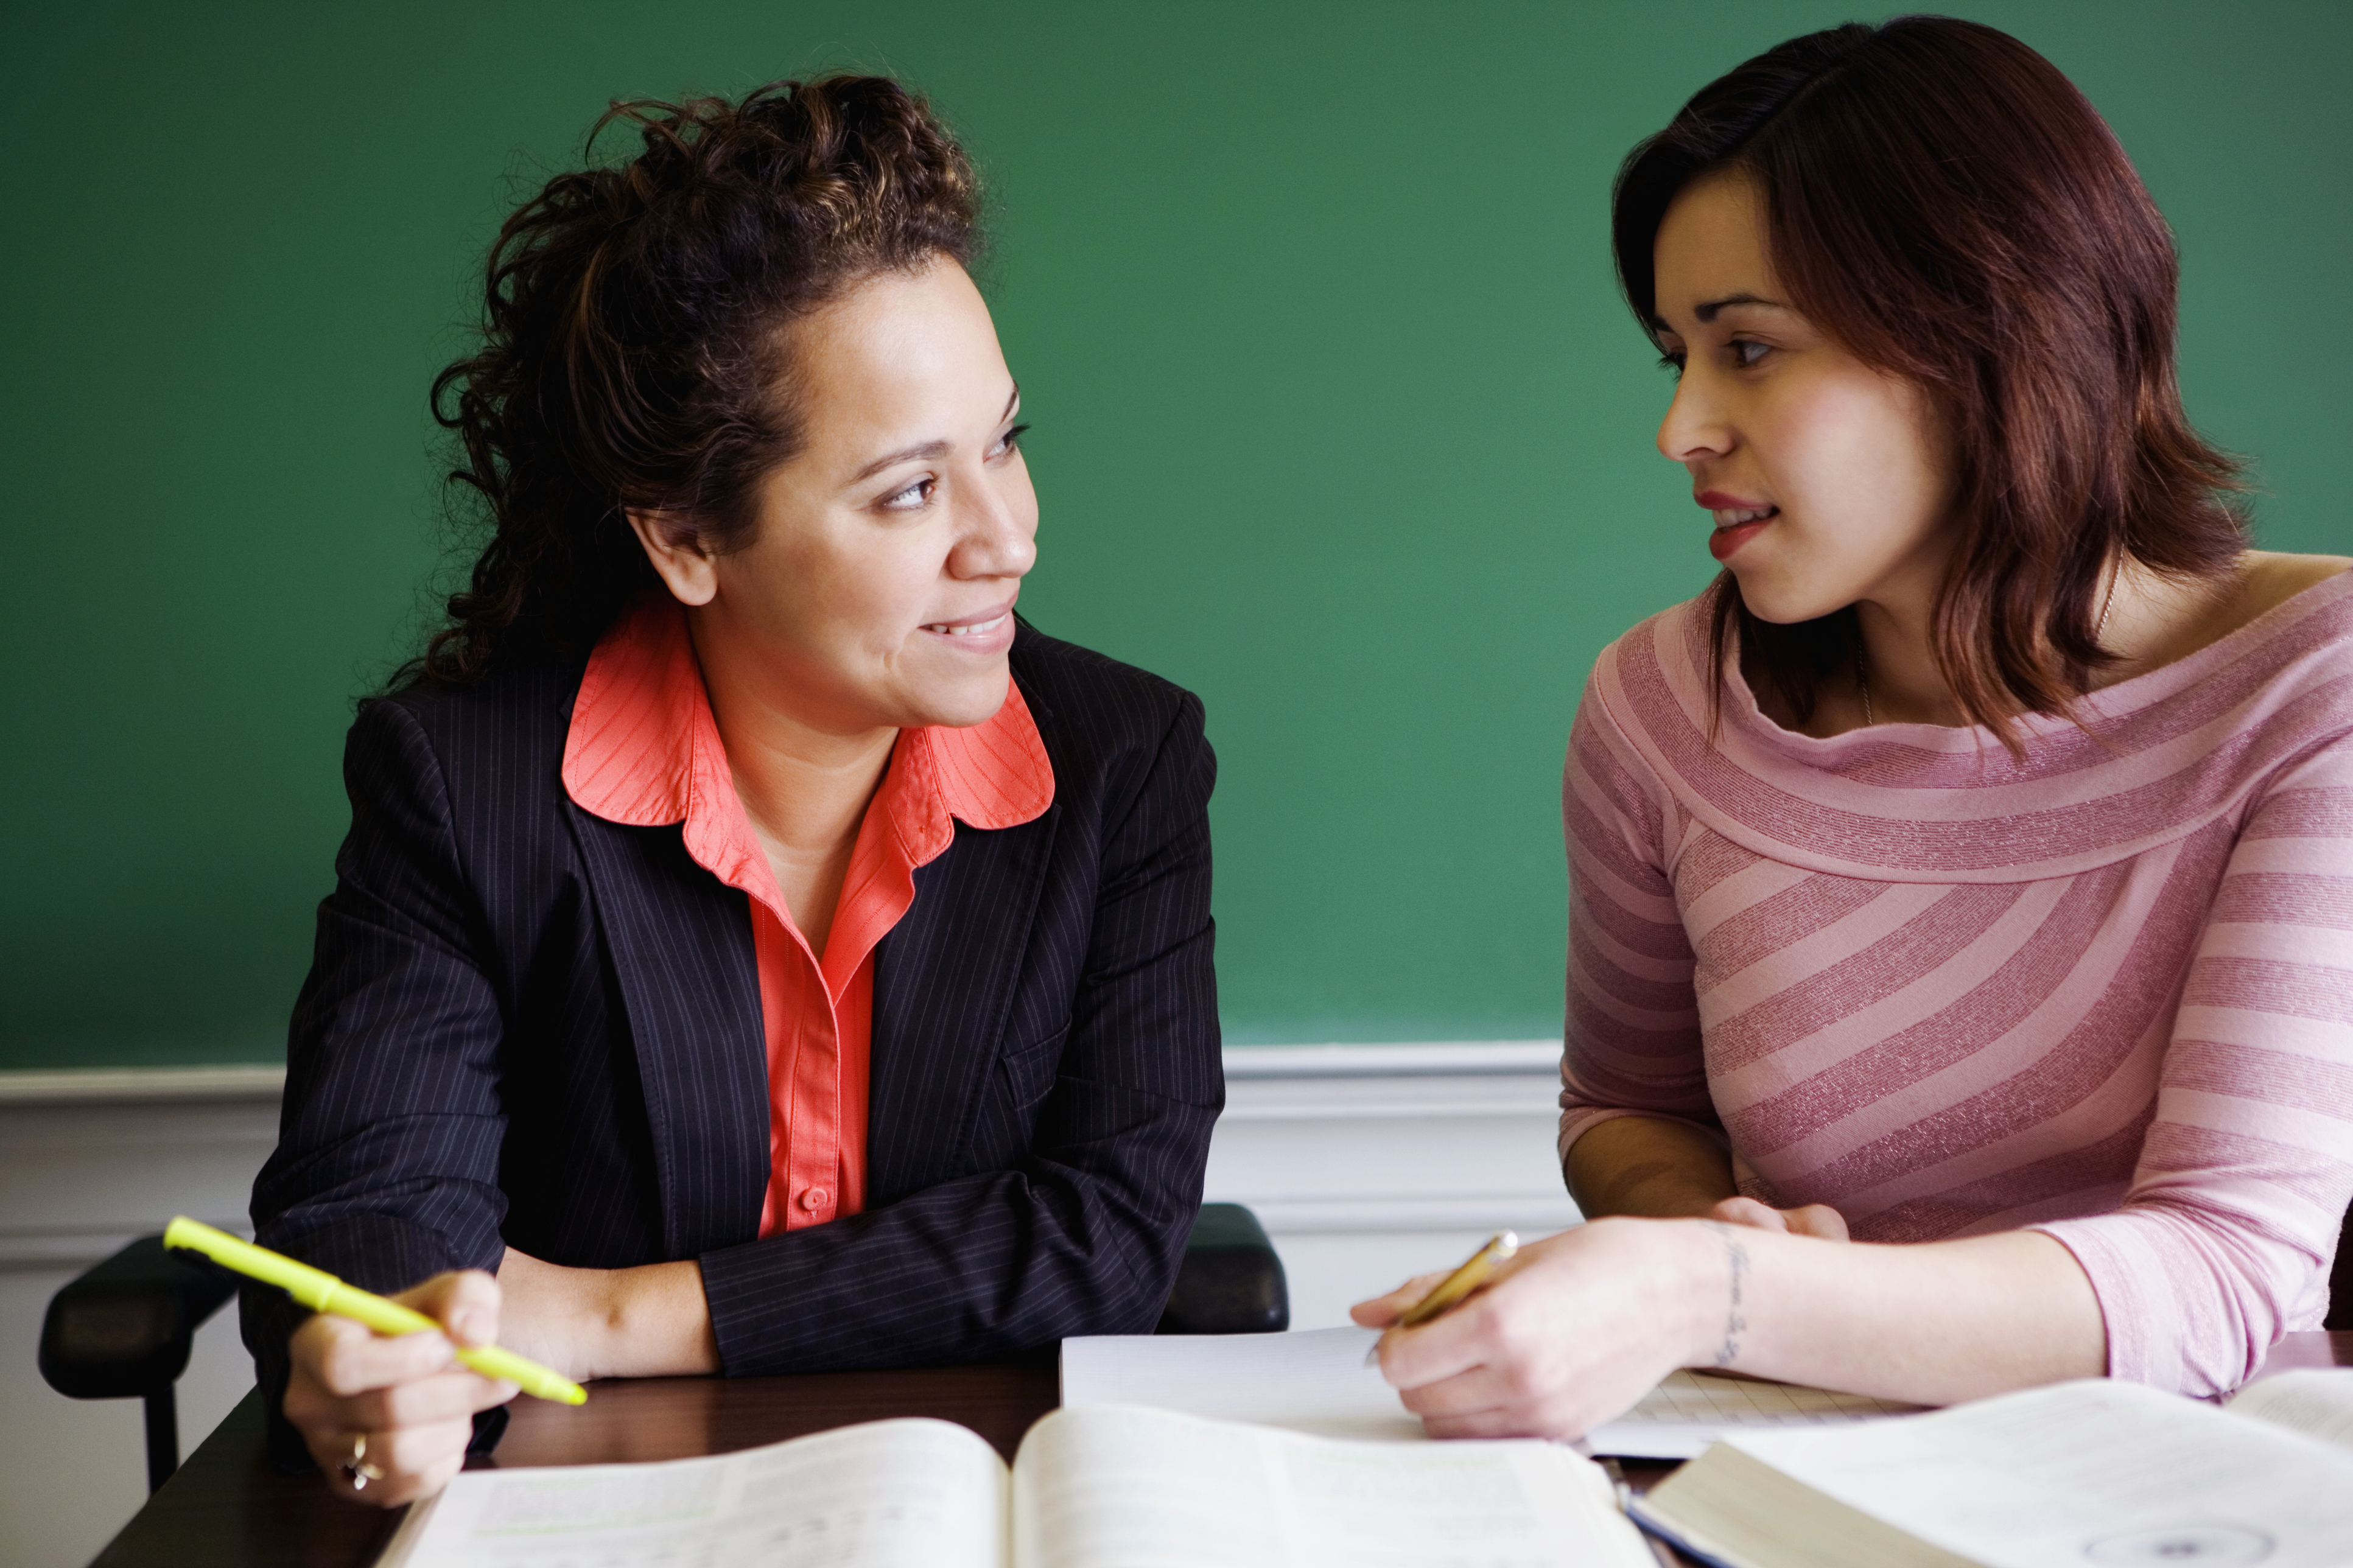 ELL411 Coaching for Communication-Focused Conversation Cover Image